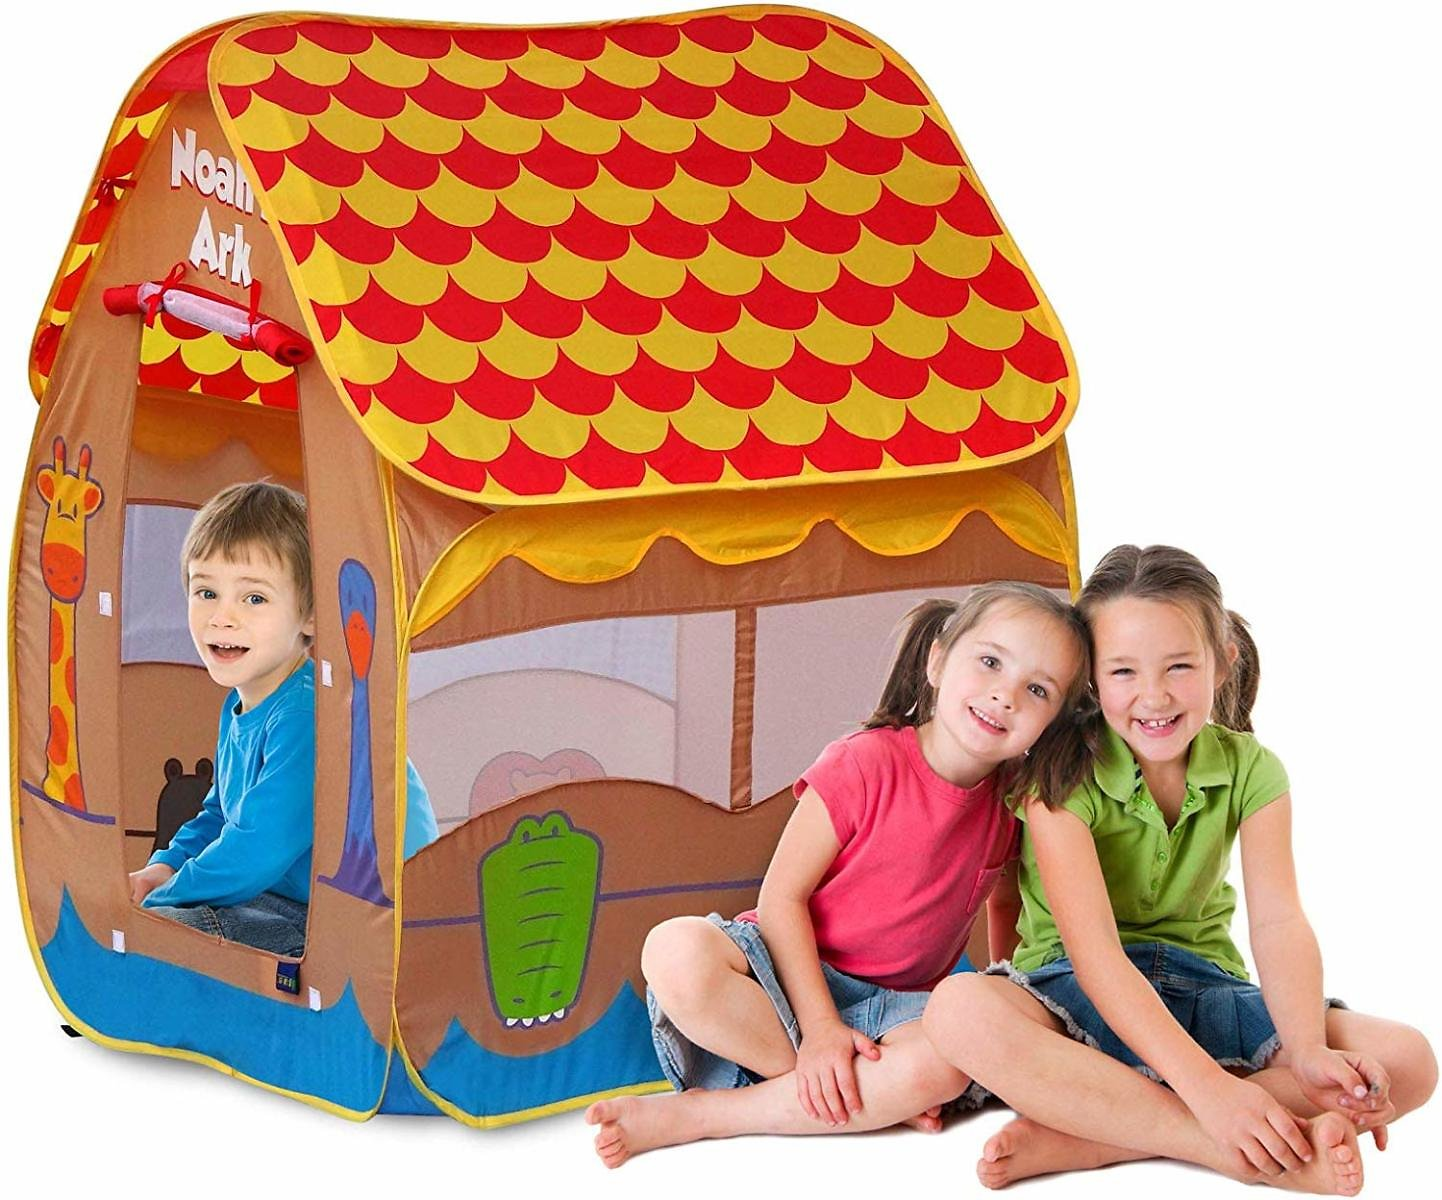 Gigatent Noah's Ark Pop-up Play Tent With Roll-up Windows & Doors